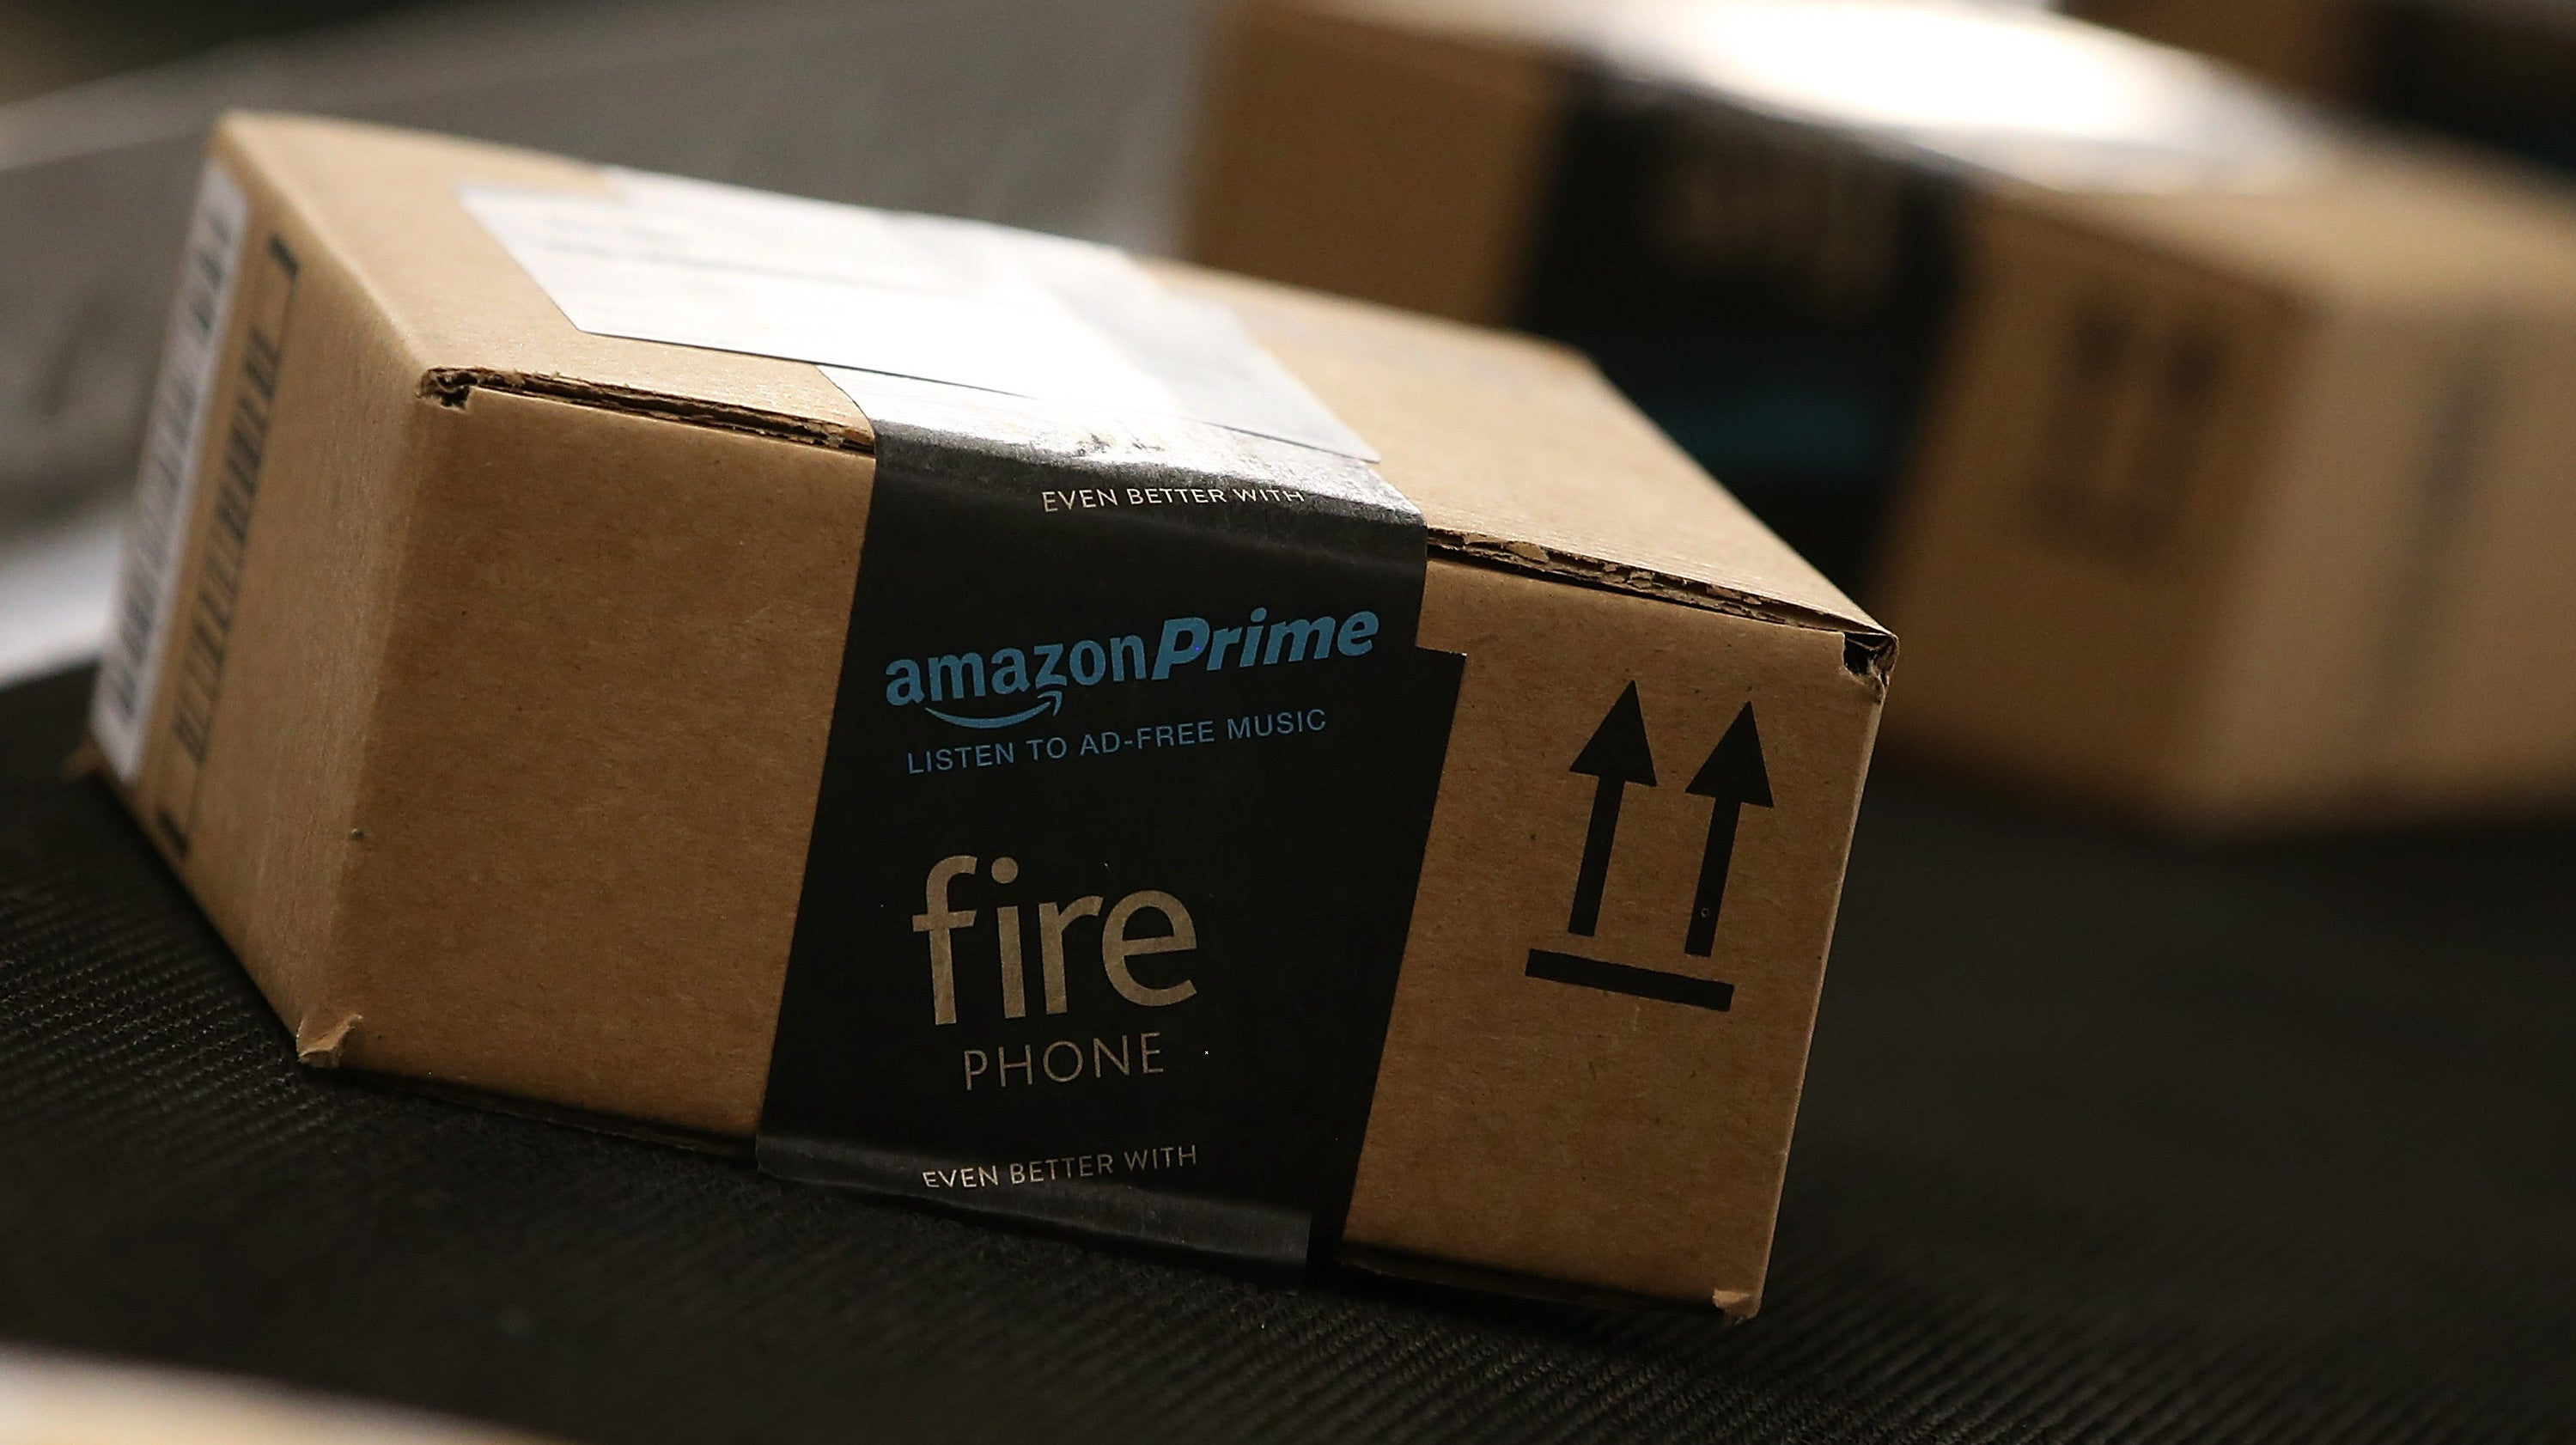 After Destroying Brick And Mortars, Amazon Reportedly Planning To Cut Ties With Thousands Of Small Vendors